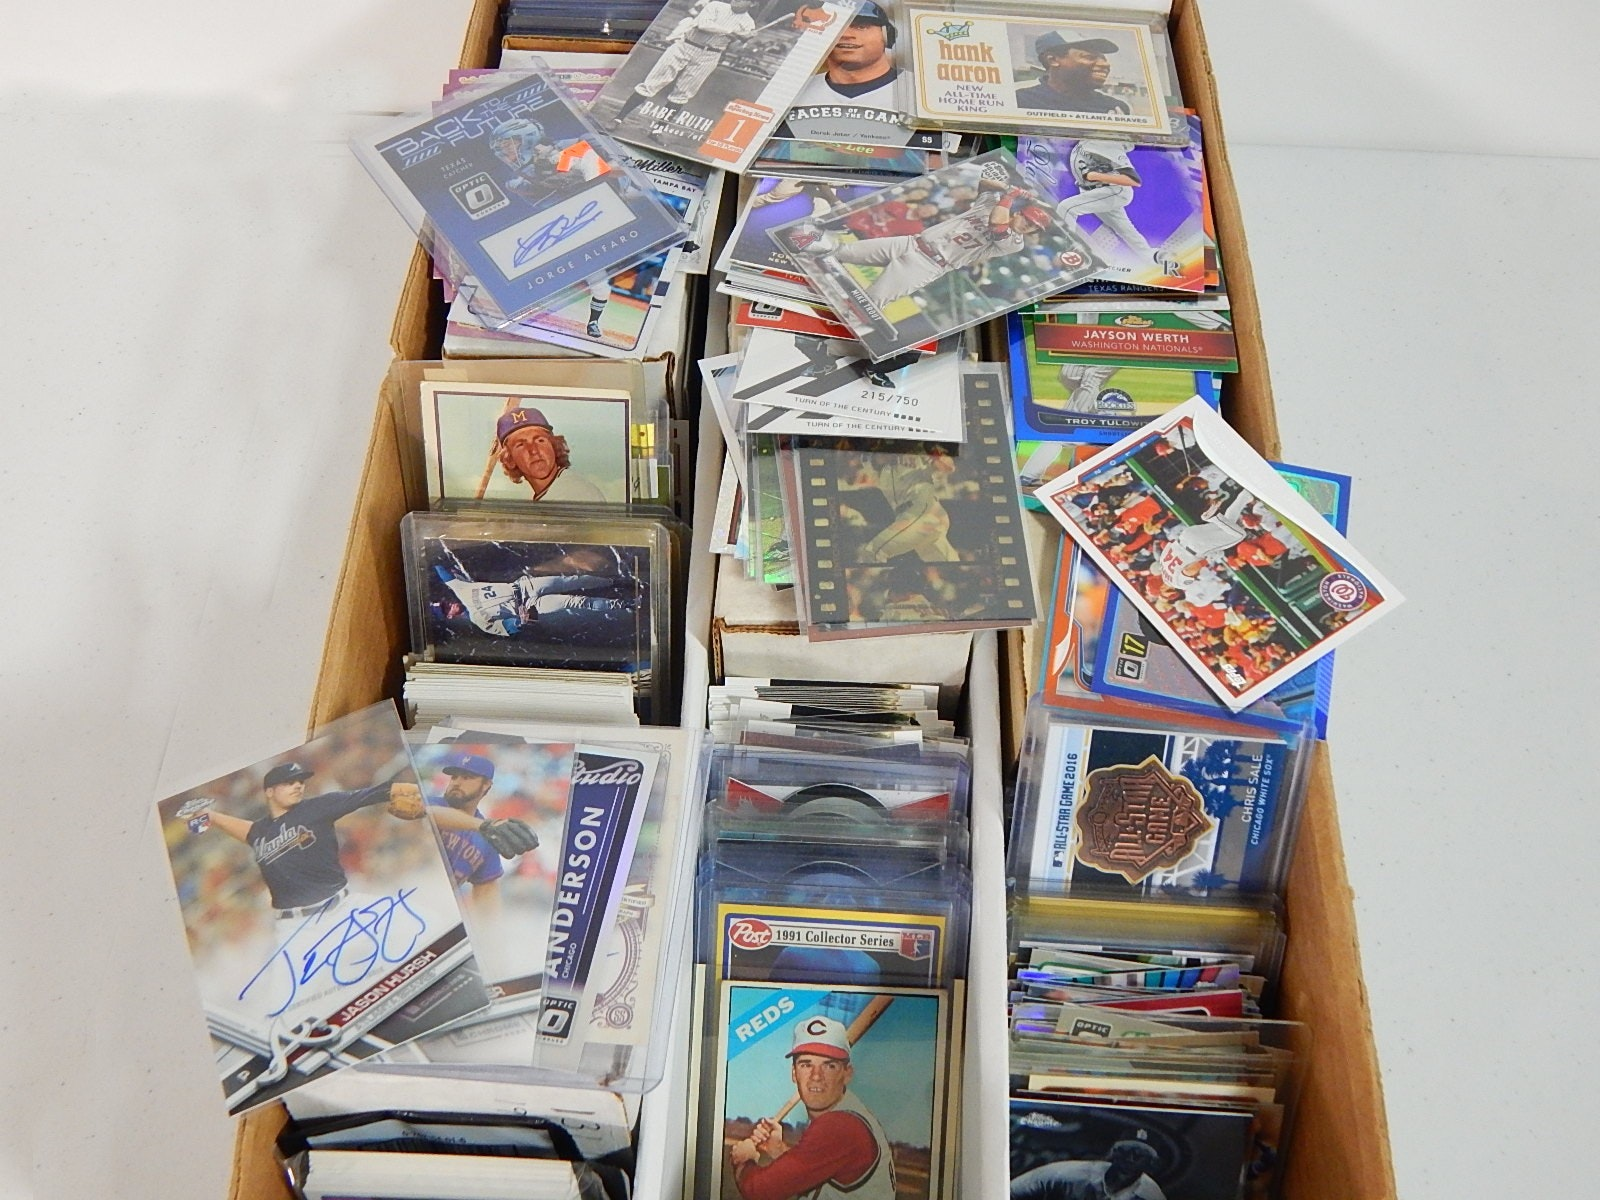 3200 Count Box of Baseball Cards from 1960s through 2000s